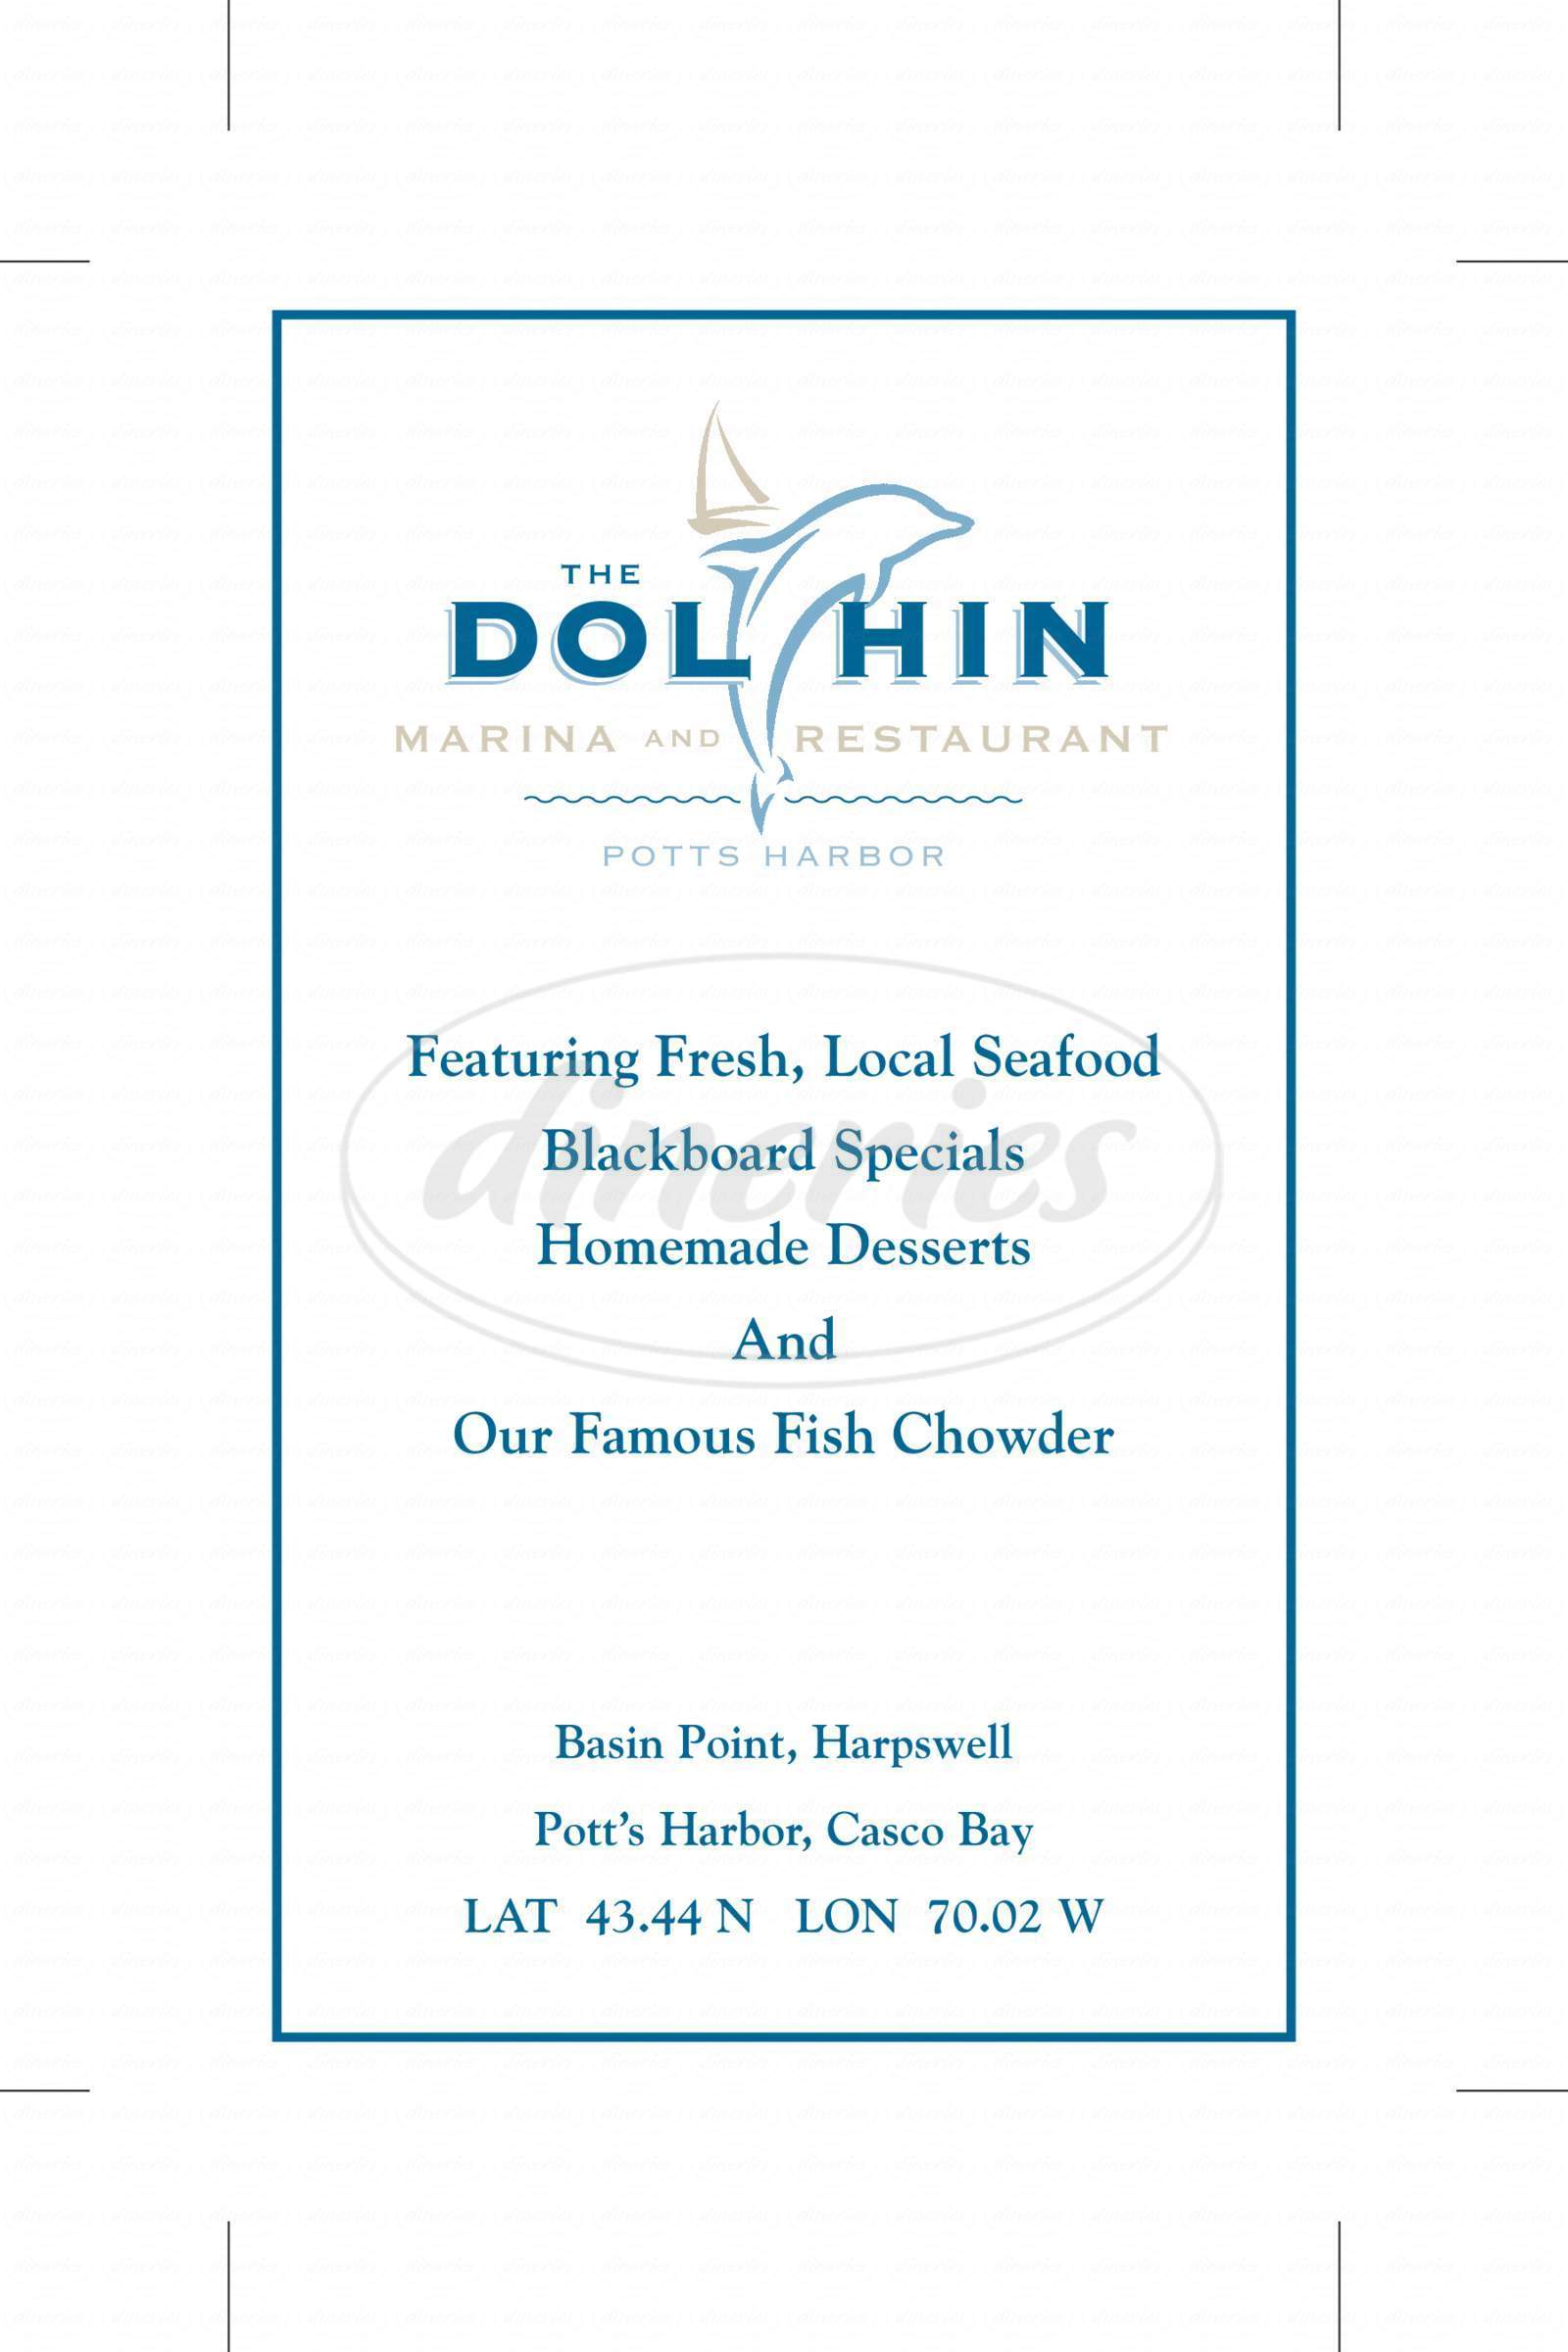 menu for Dolphin Marina and Restaurant